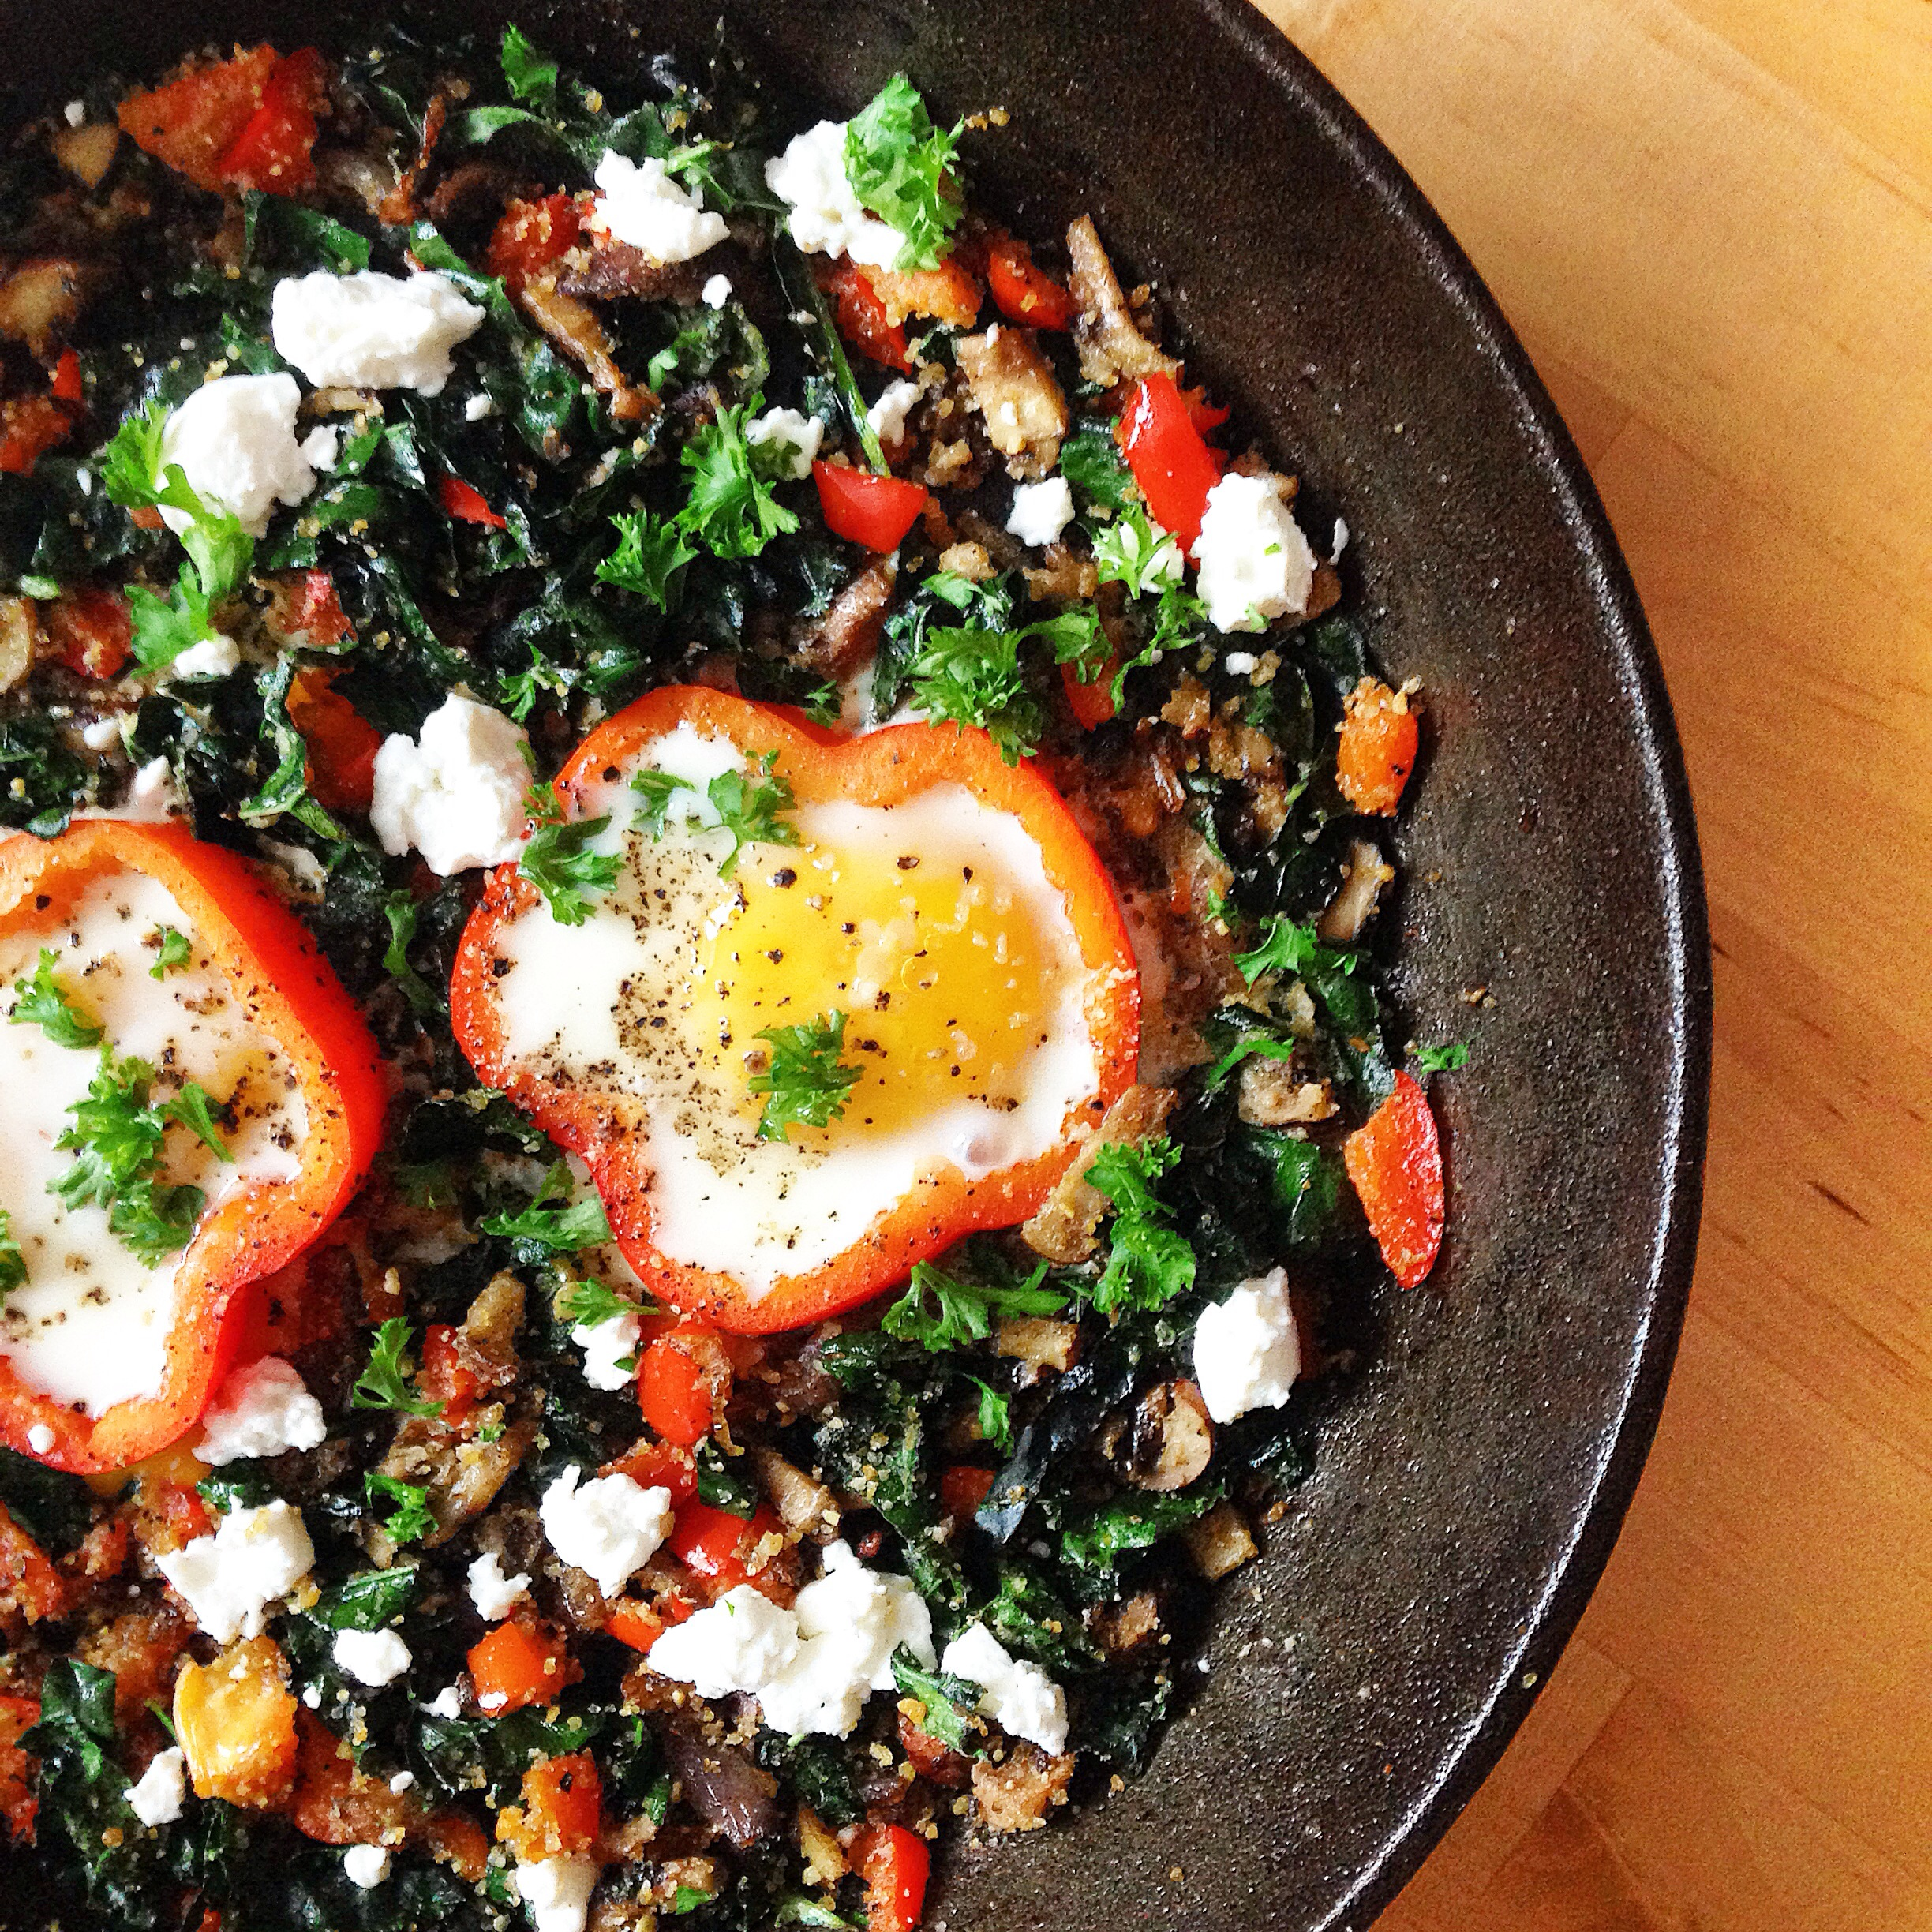 Skillet Saturdays: Red Pepper Egg-In-A-Hole | EverythingOrganicAlways